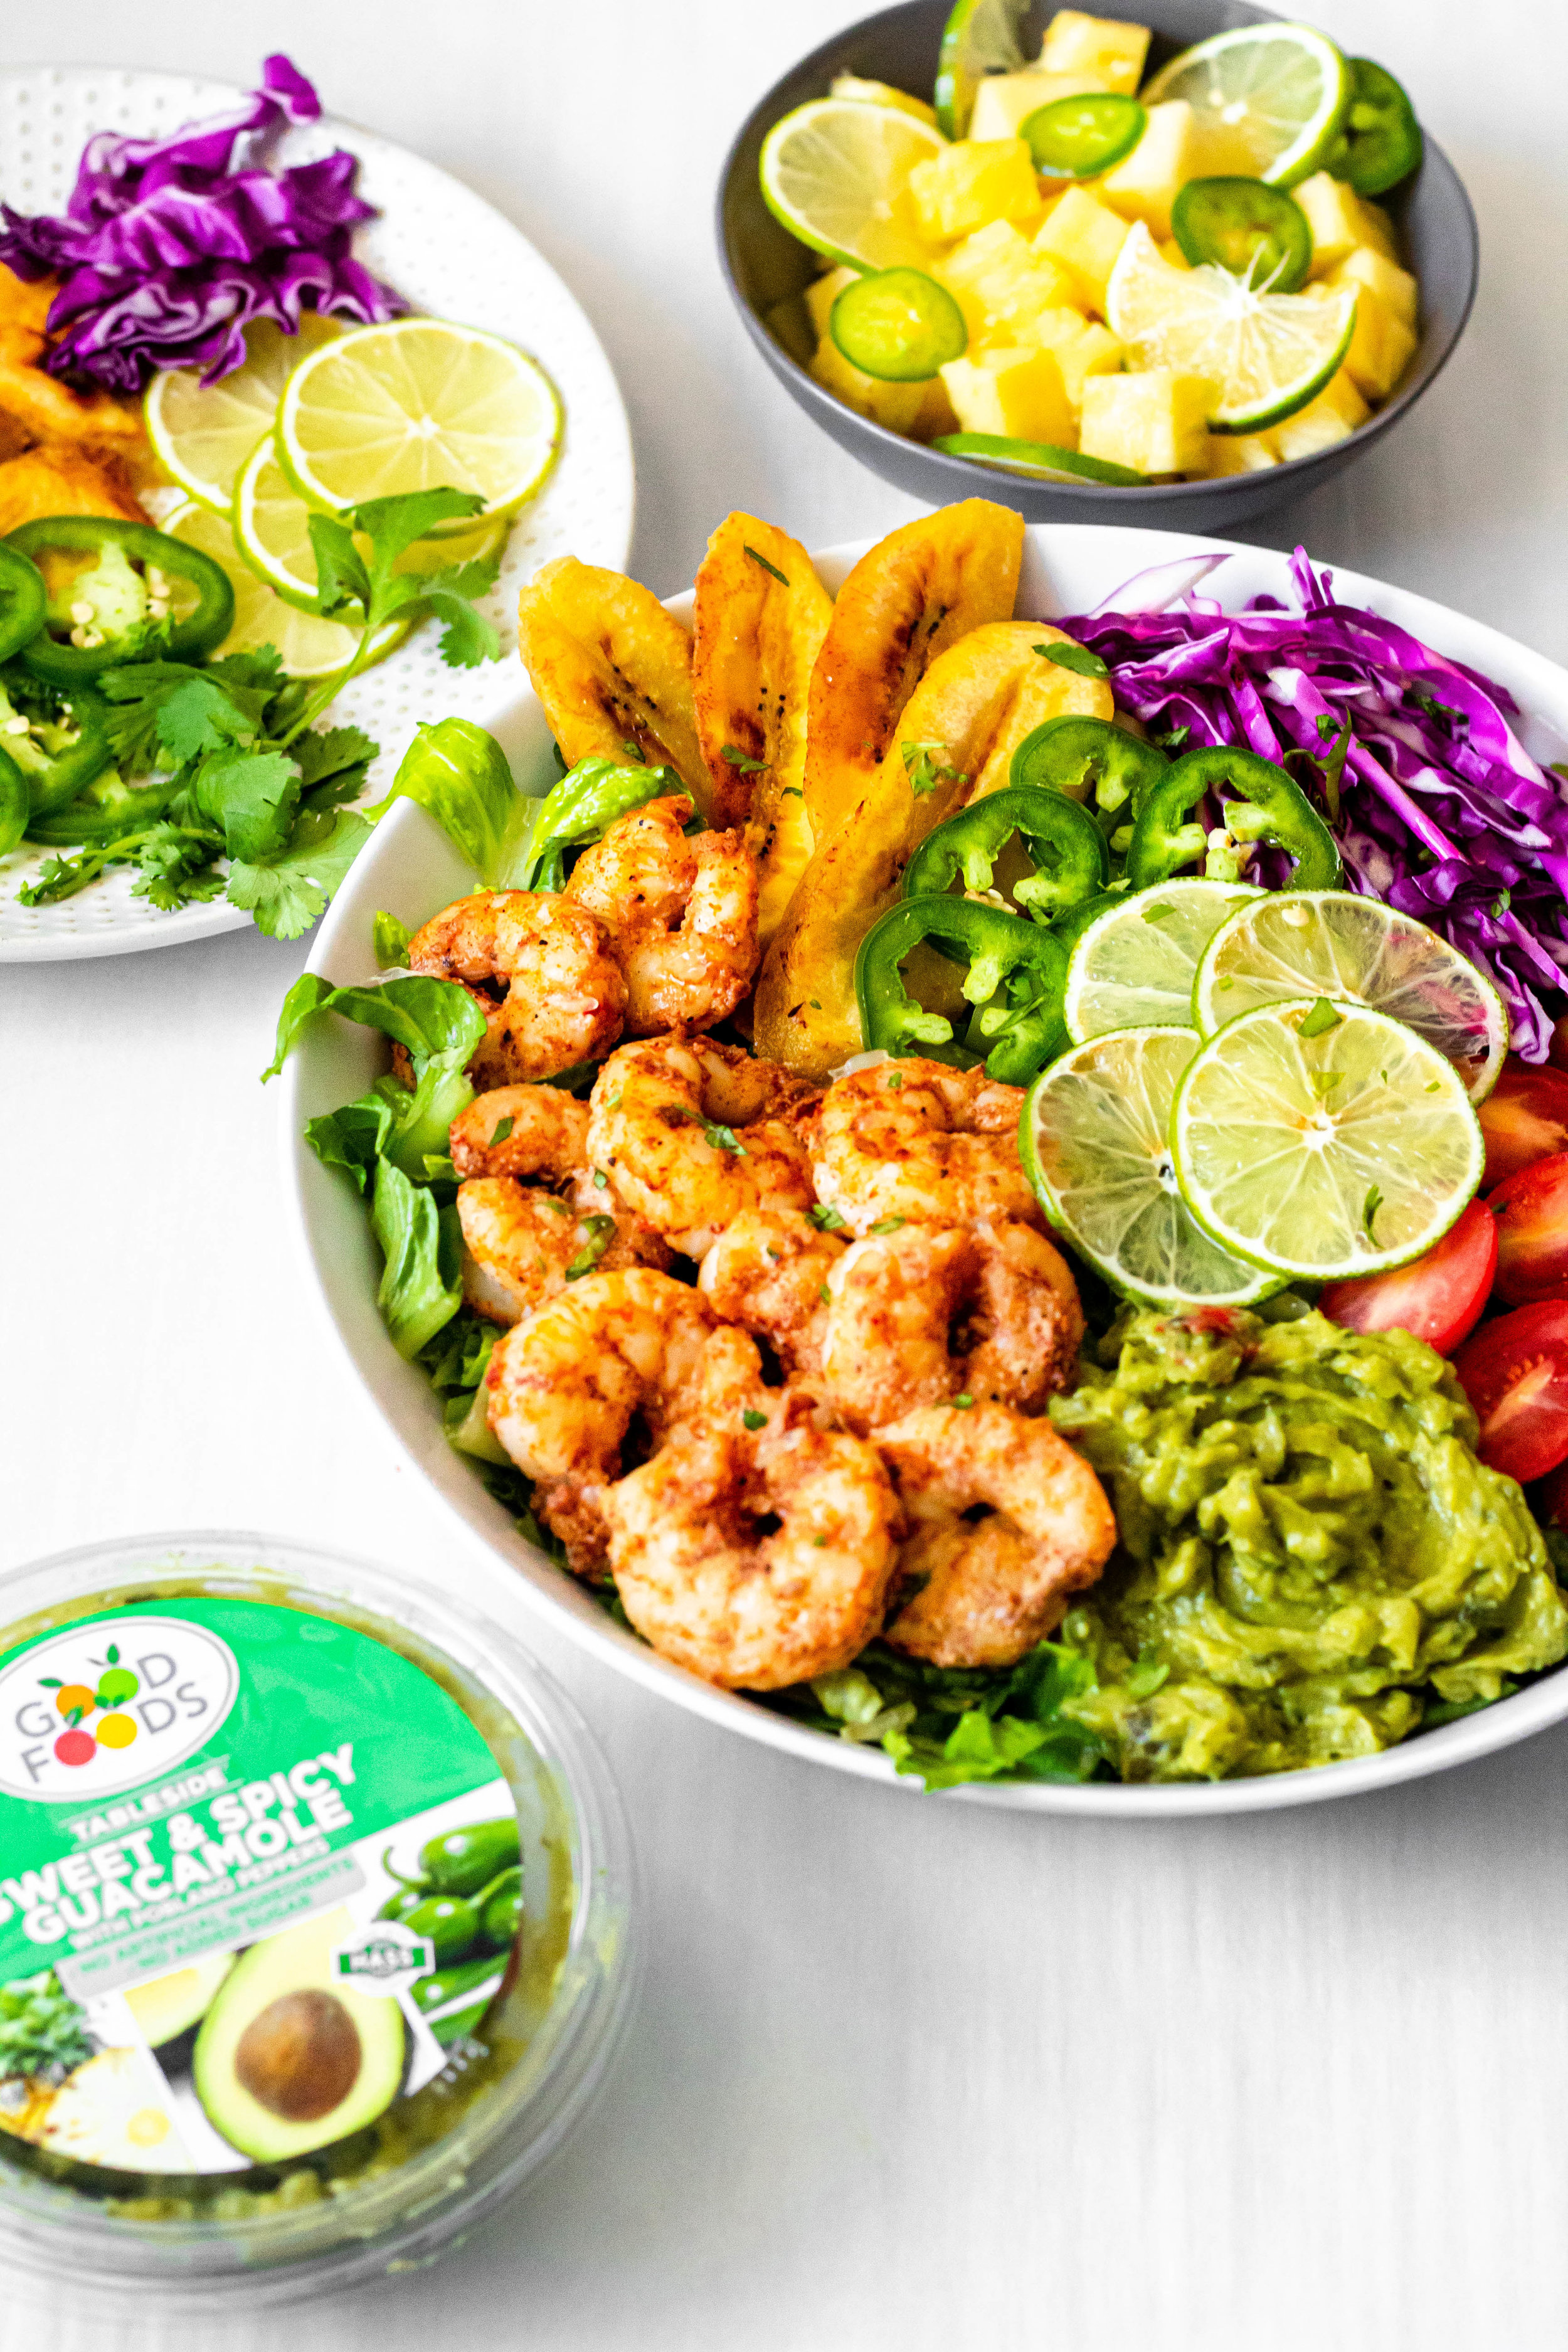 Chili Lime Shrimp Salad - Good Foods.jpg